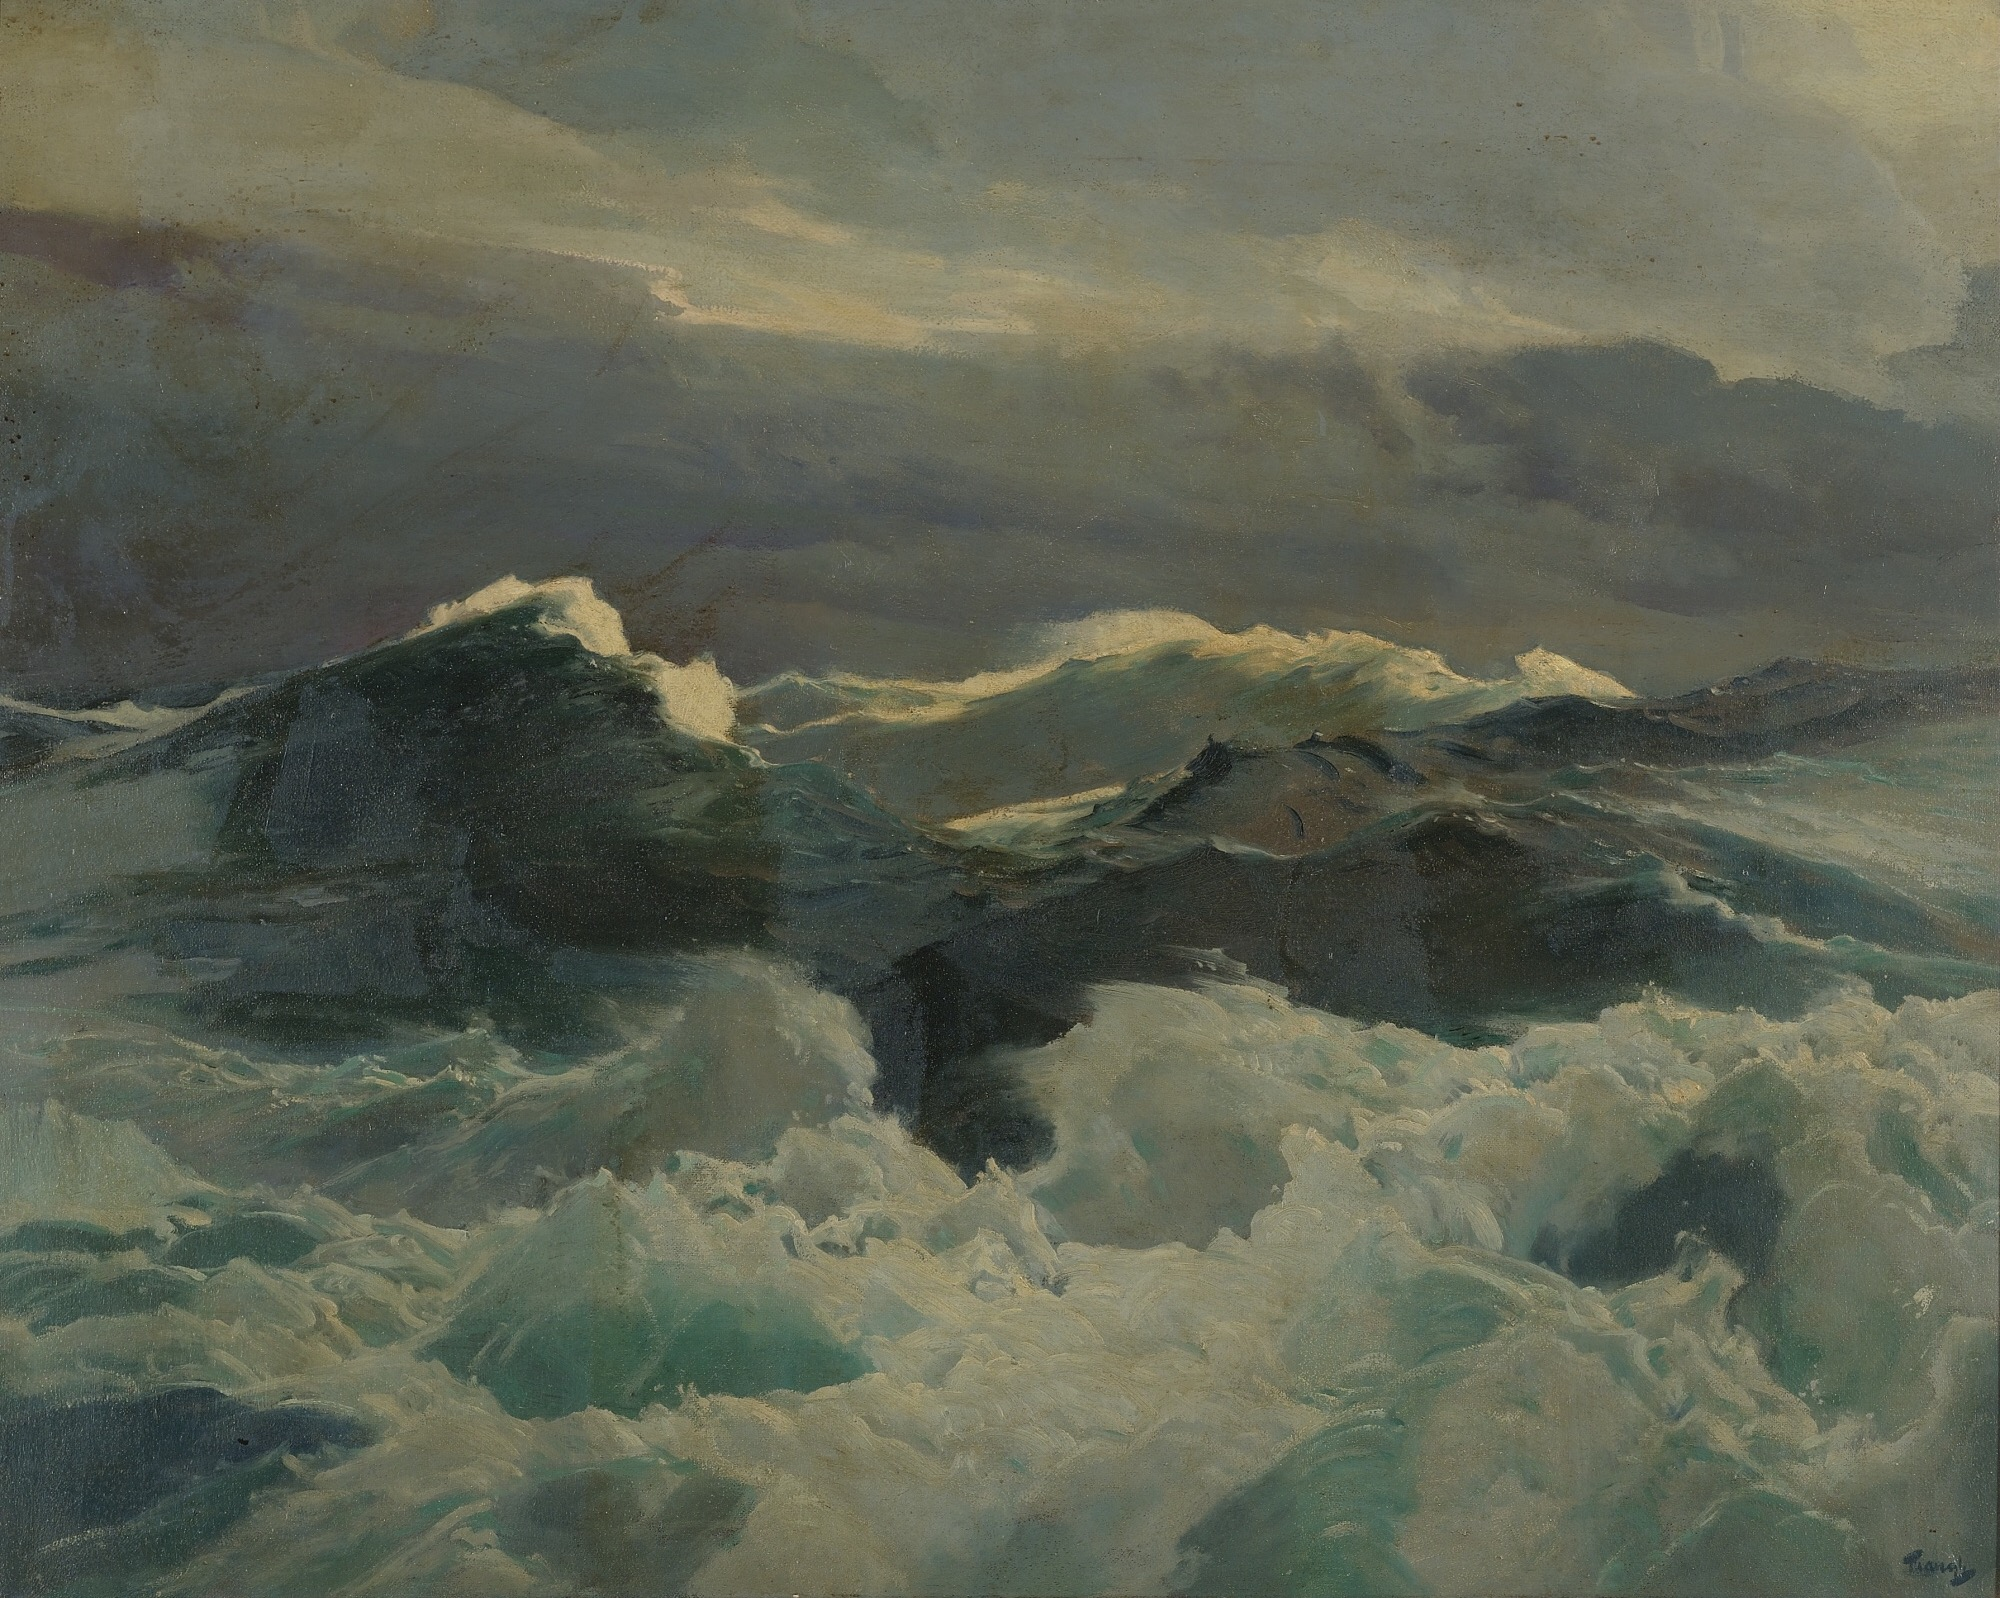 Seascape, by Frederick Judd Waugh